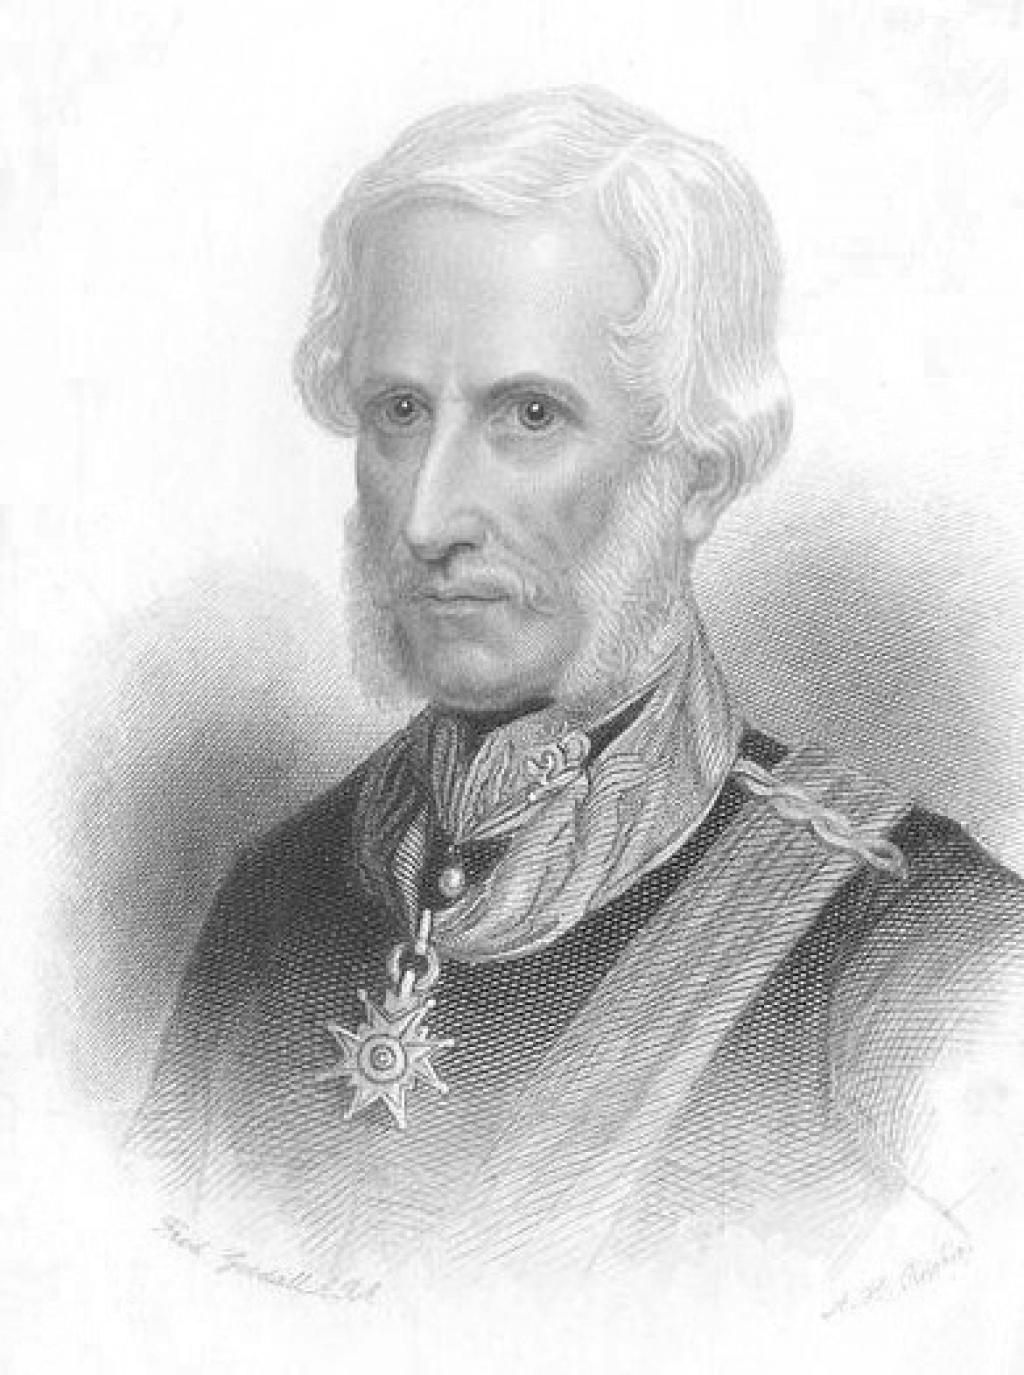 General Henry Havelock of the colonial British Army that quelled the Sepoy Rebellion or the First War of Indian Independence          Credit: Wikimedia Commons